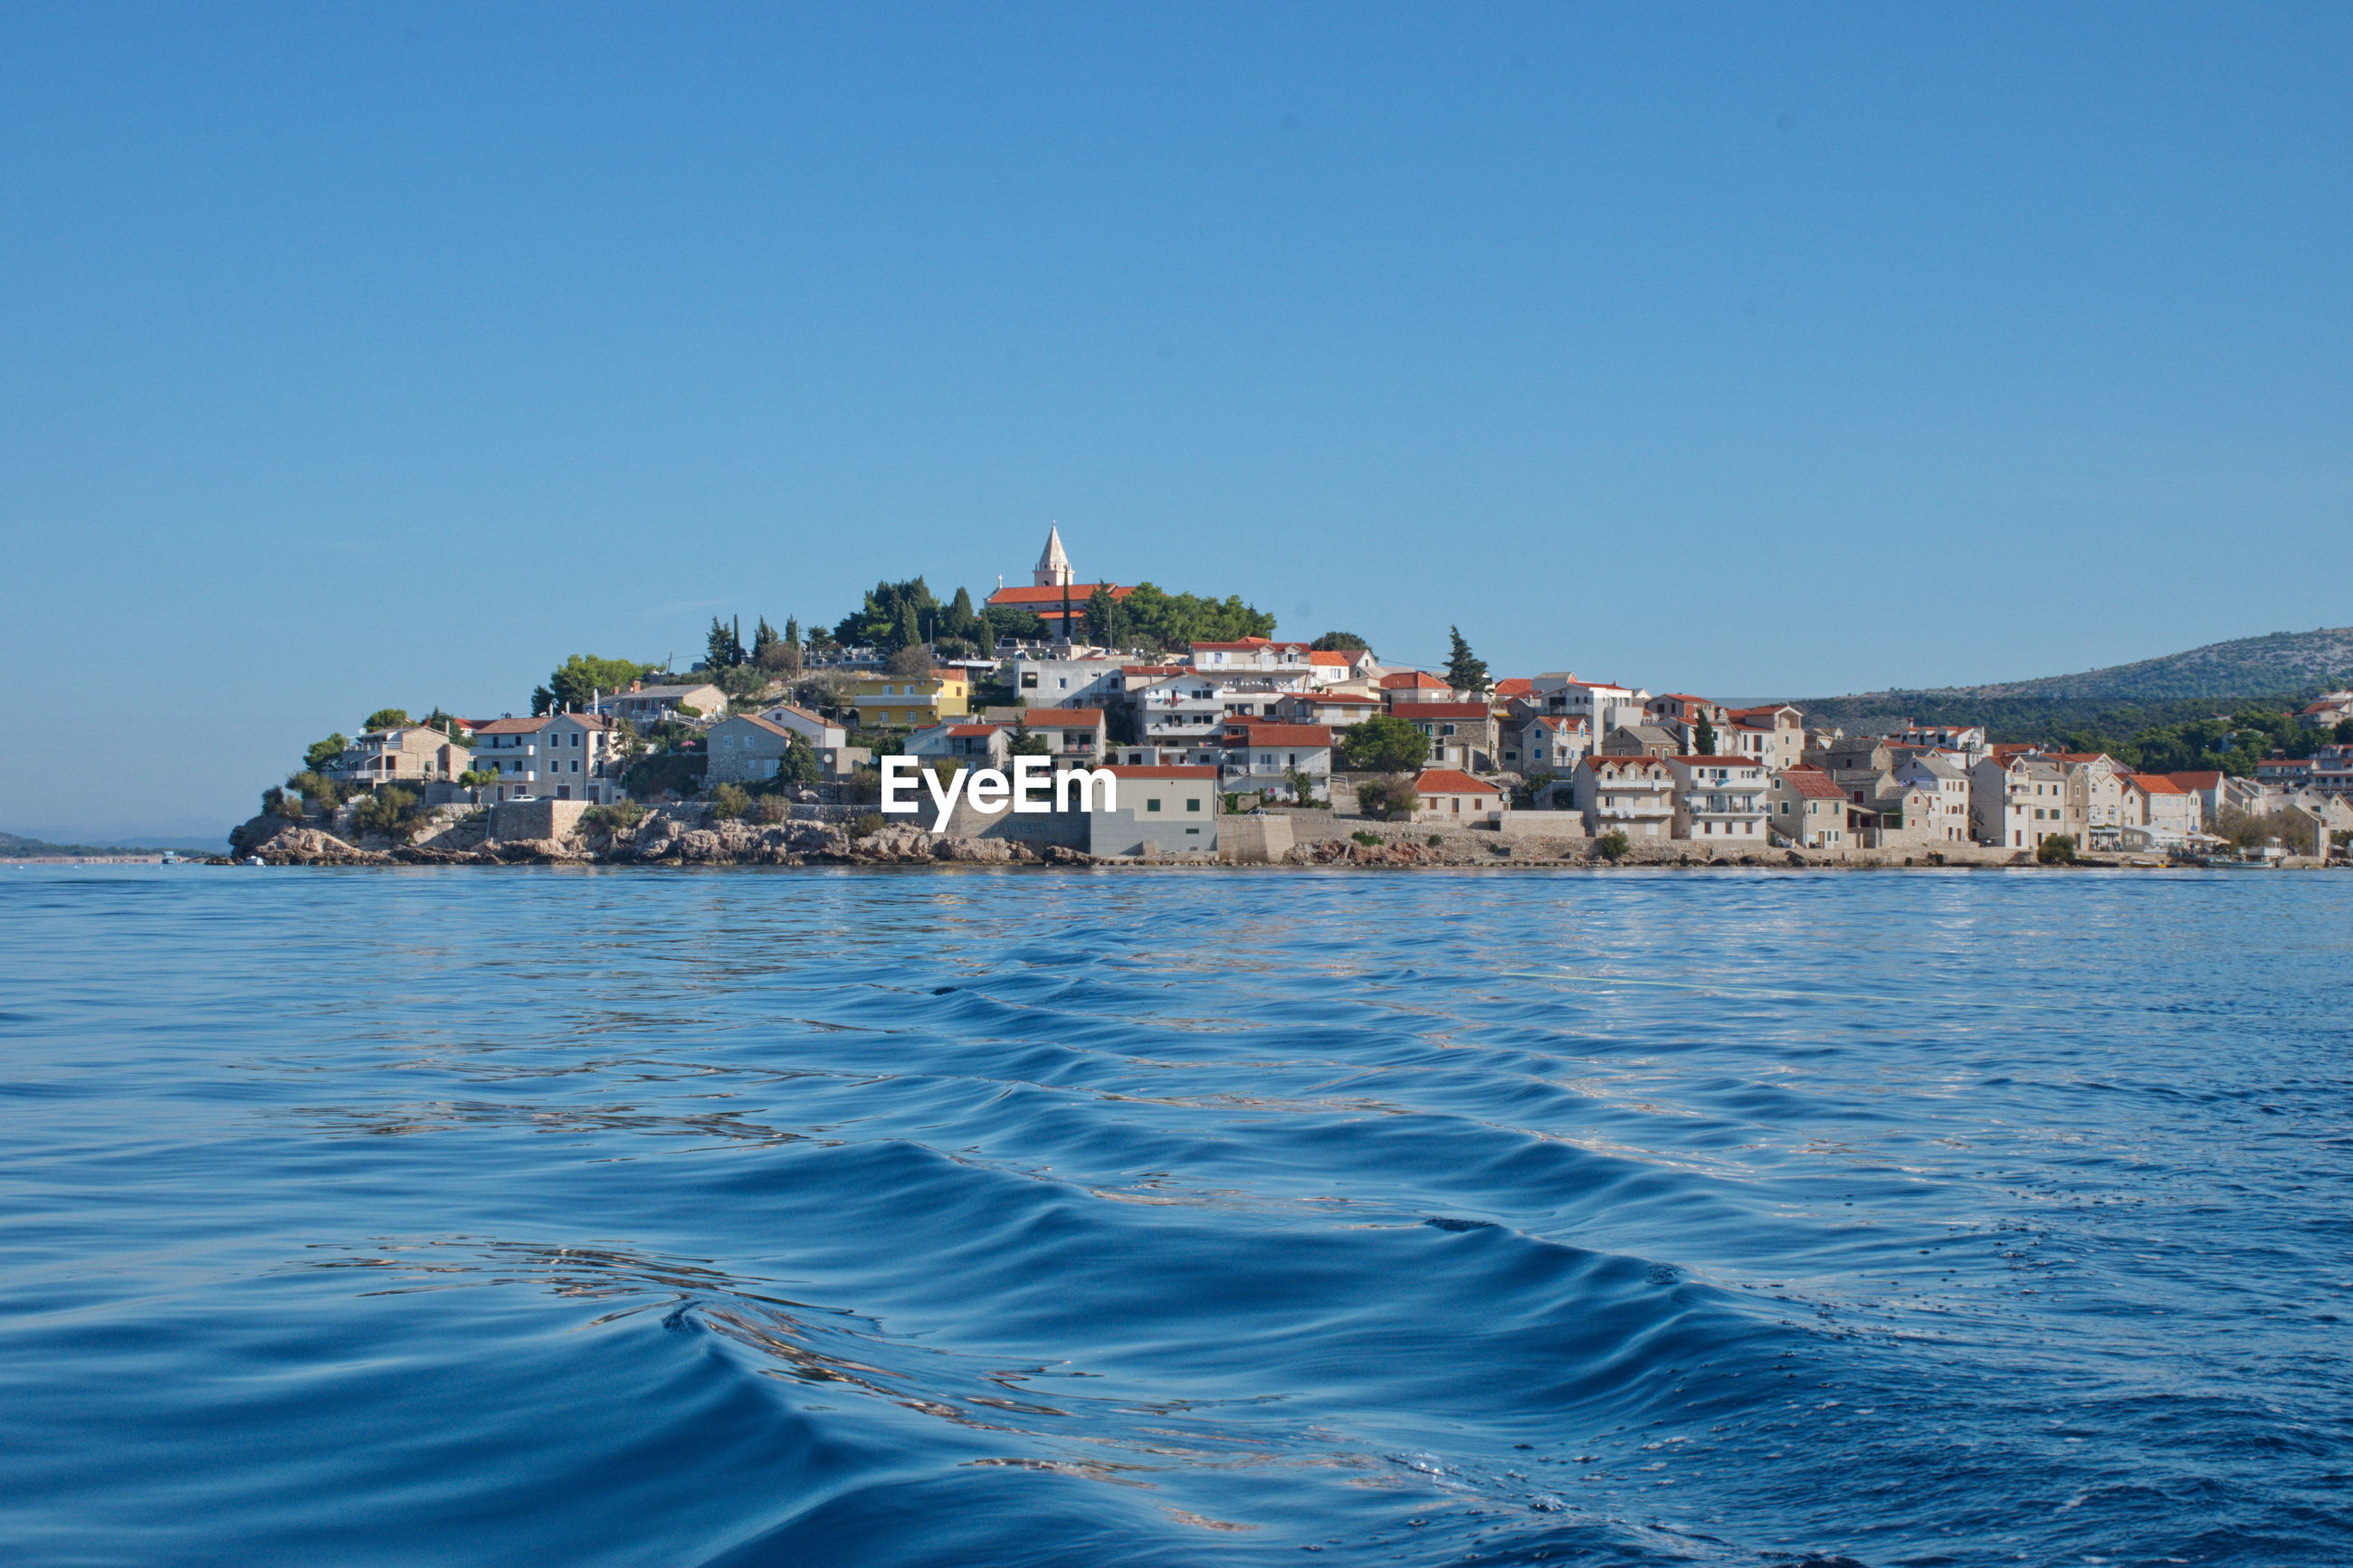 Sailing on motor boat on adriatic sea with primosten cityscape in the background.